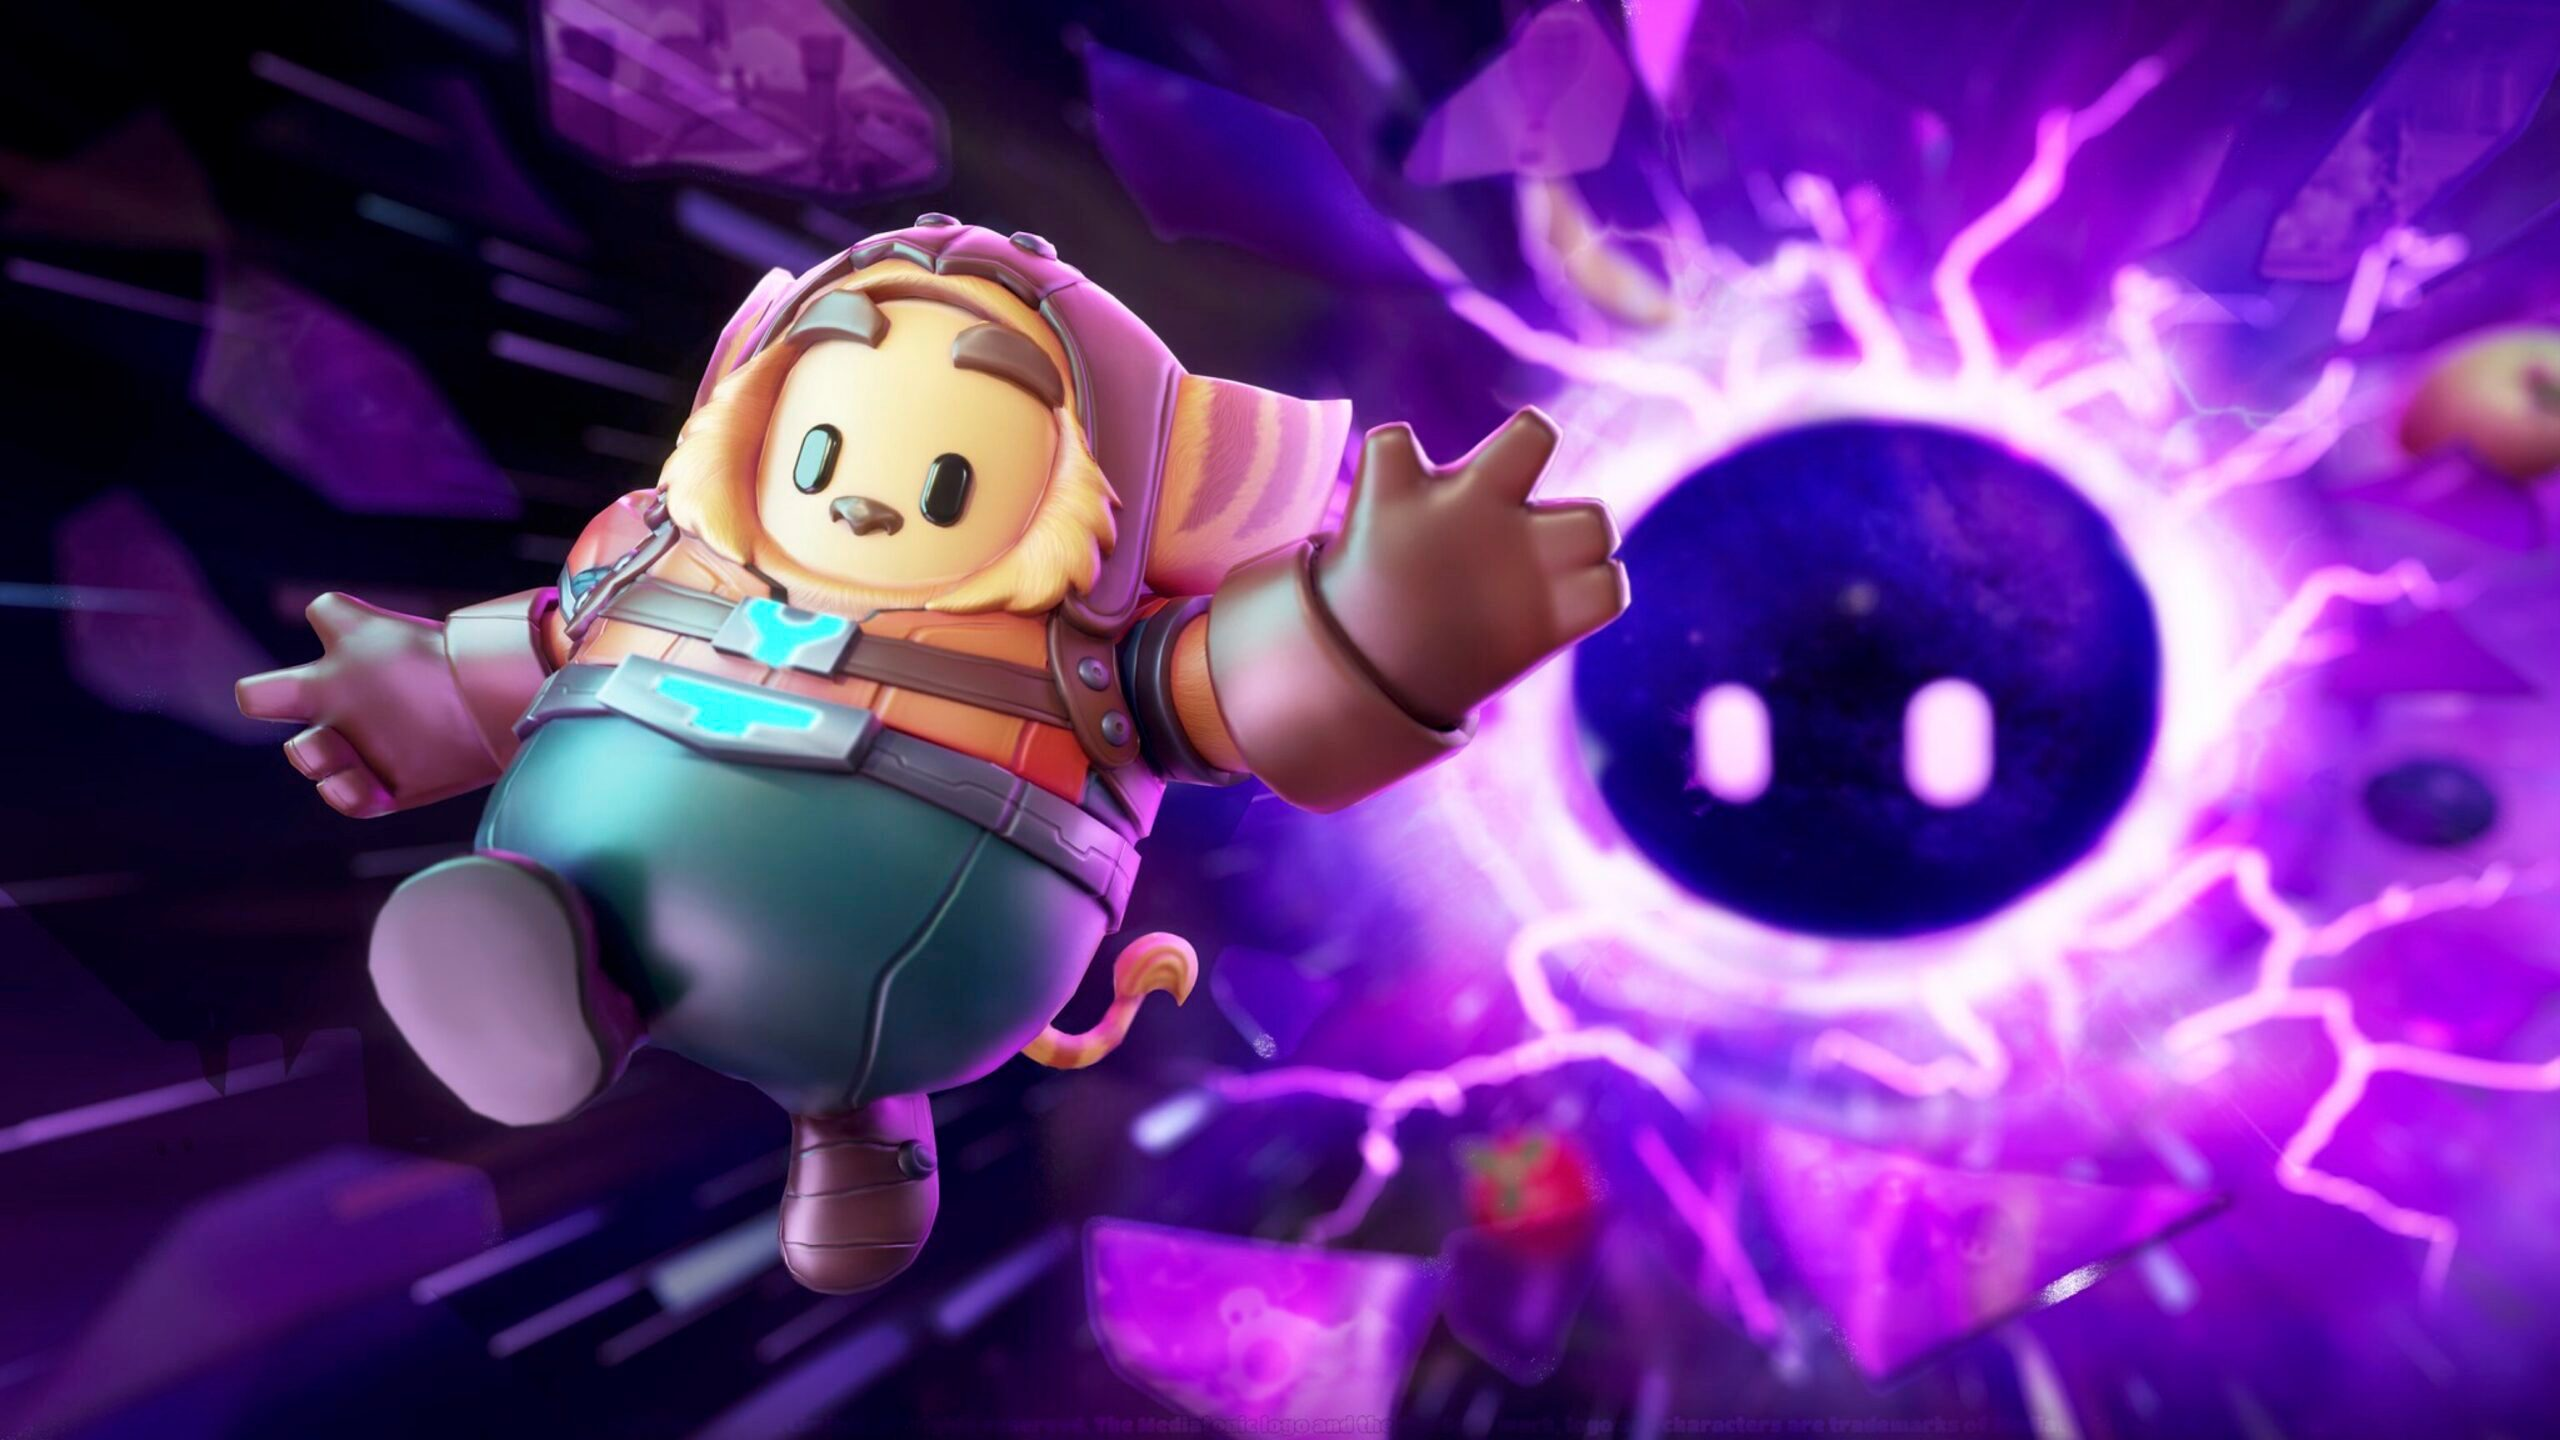 Ratchet and Clank blast into Fall Guys for Limited Time Events and